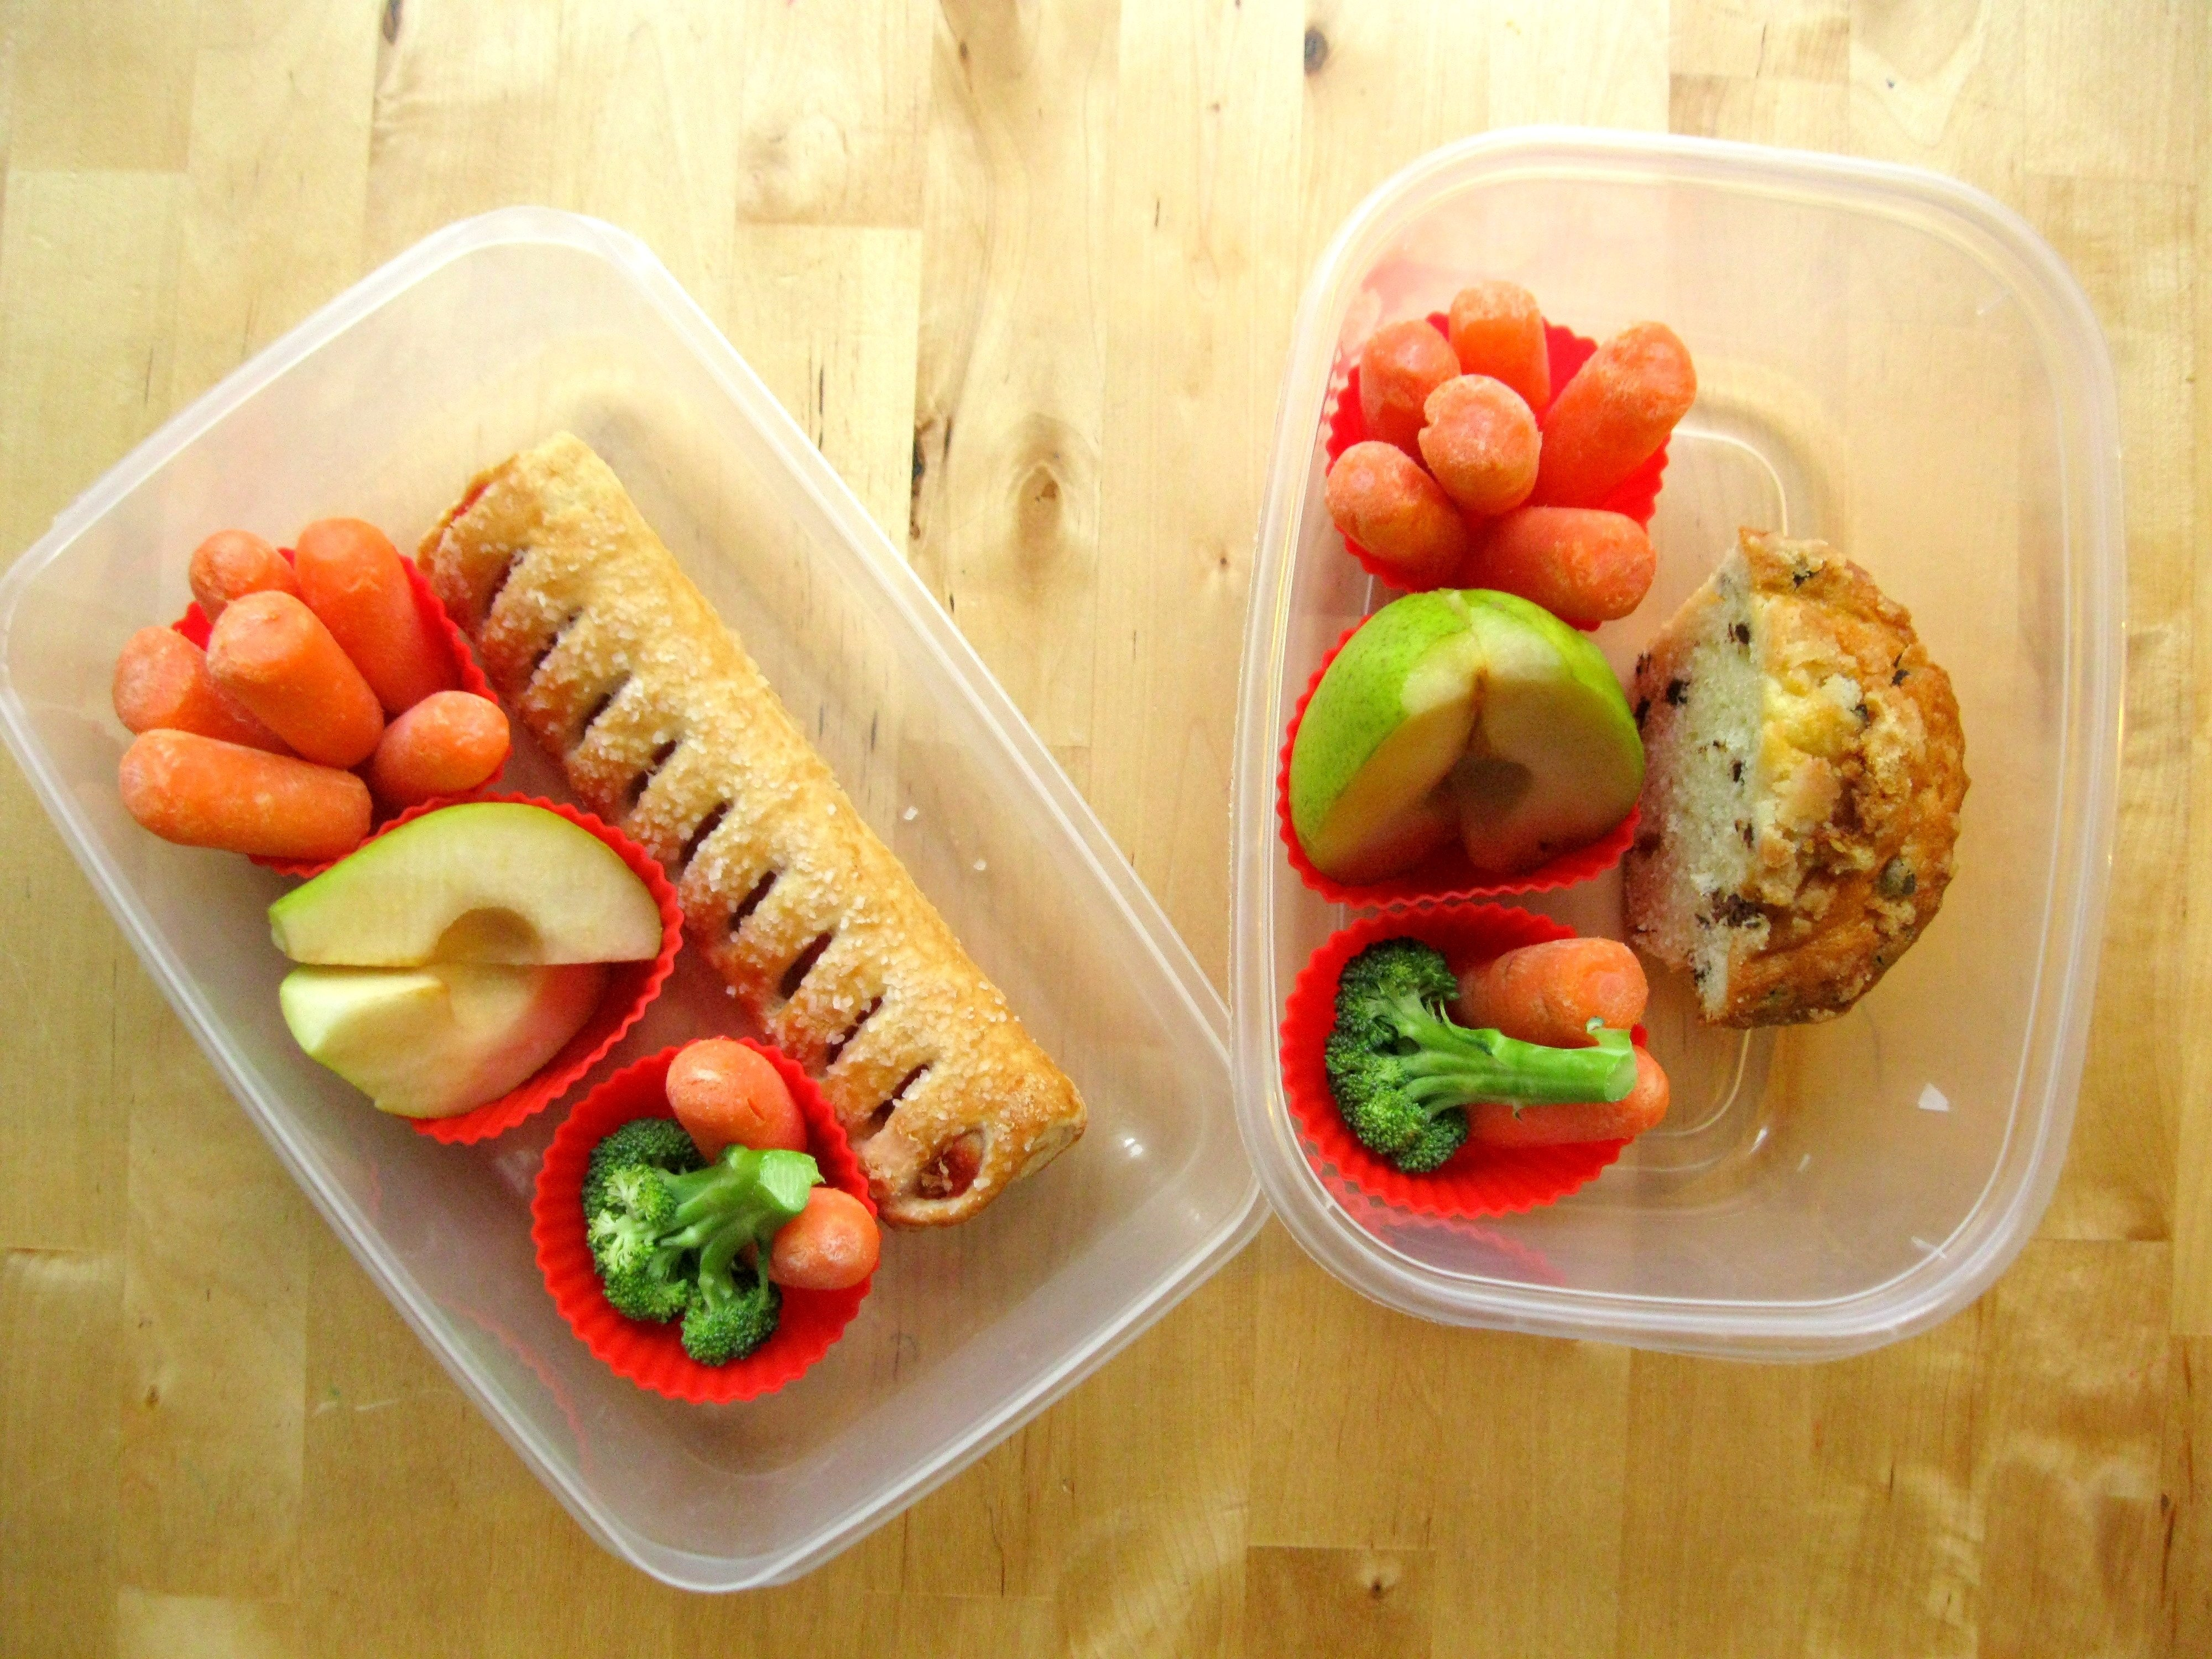 10 Fantastic School Snack Ideas For Kids in the kitchen self serving snack box tutorial and healthy snack 2020